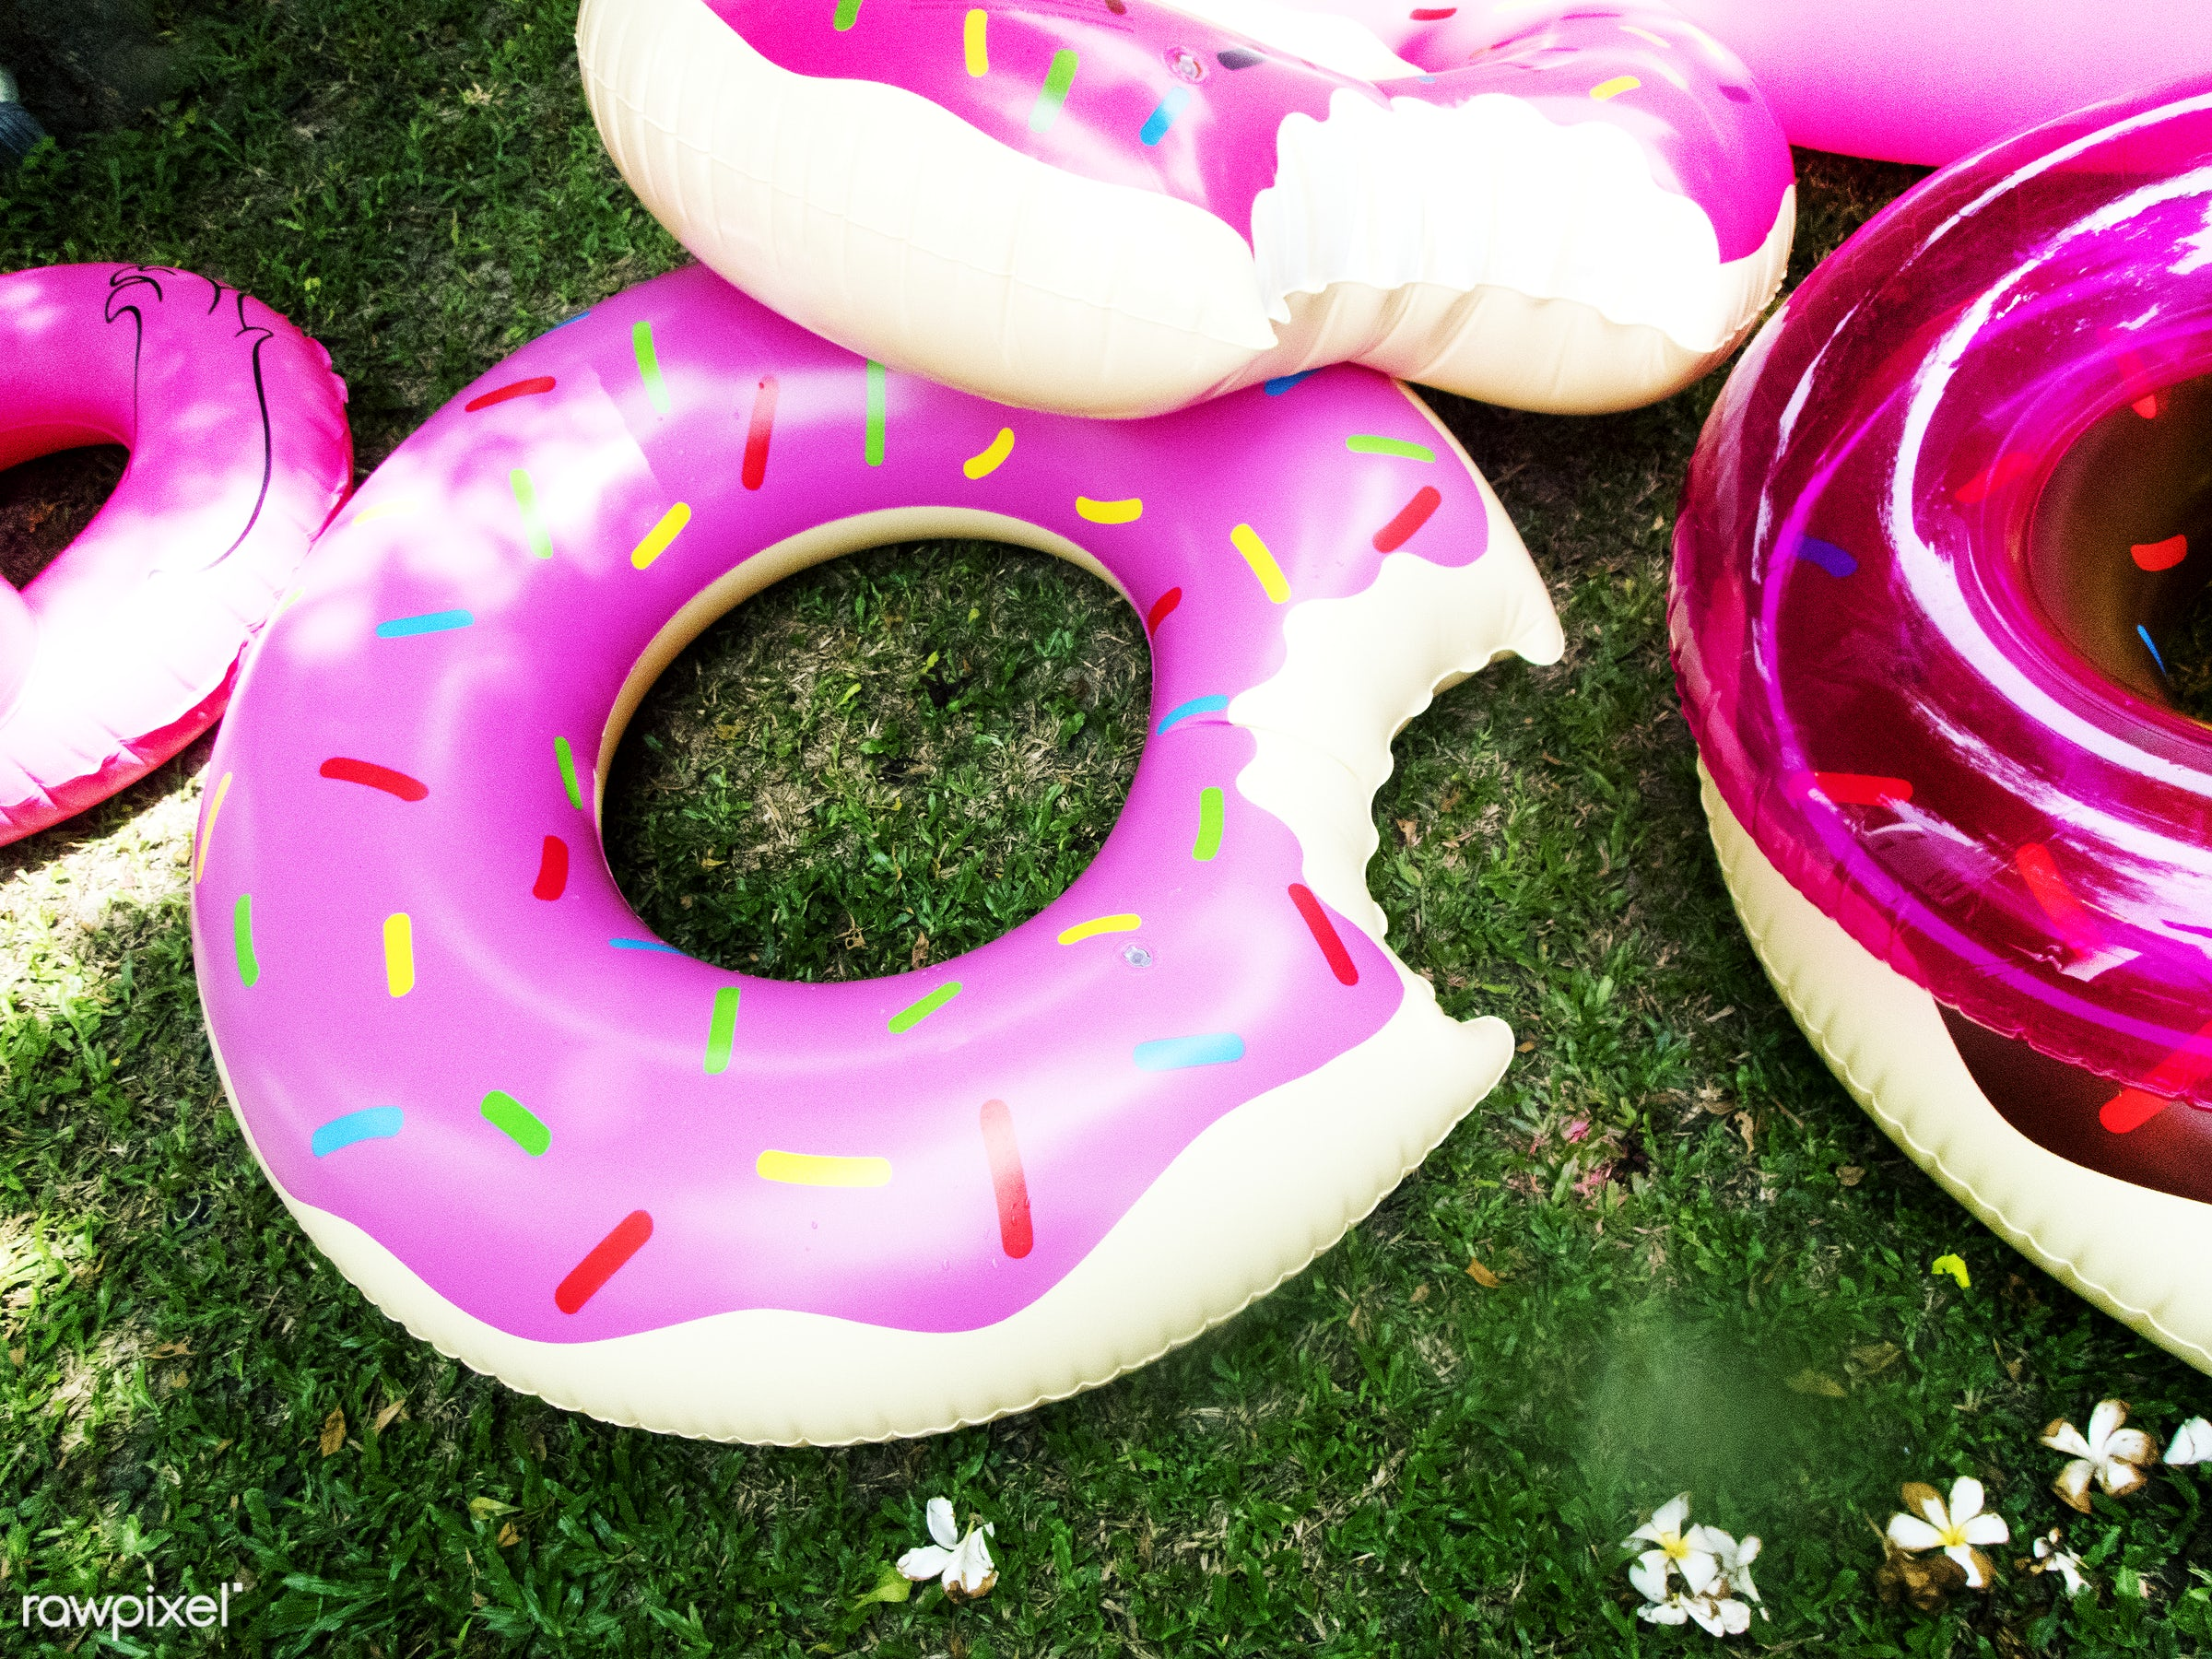 donut, inflatable, pool, backyard, closeup, grass, holiday, lawn, nobody, objects, outdoors, park, shape, summer, tubes,...